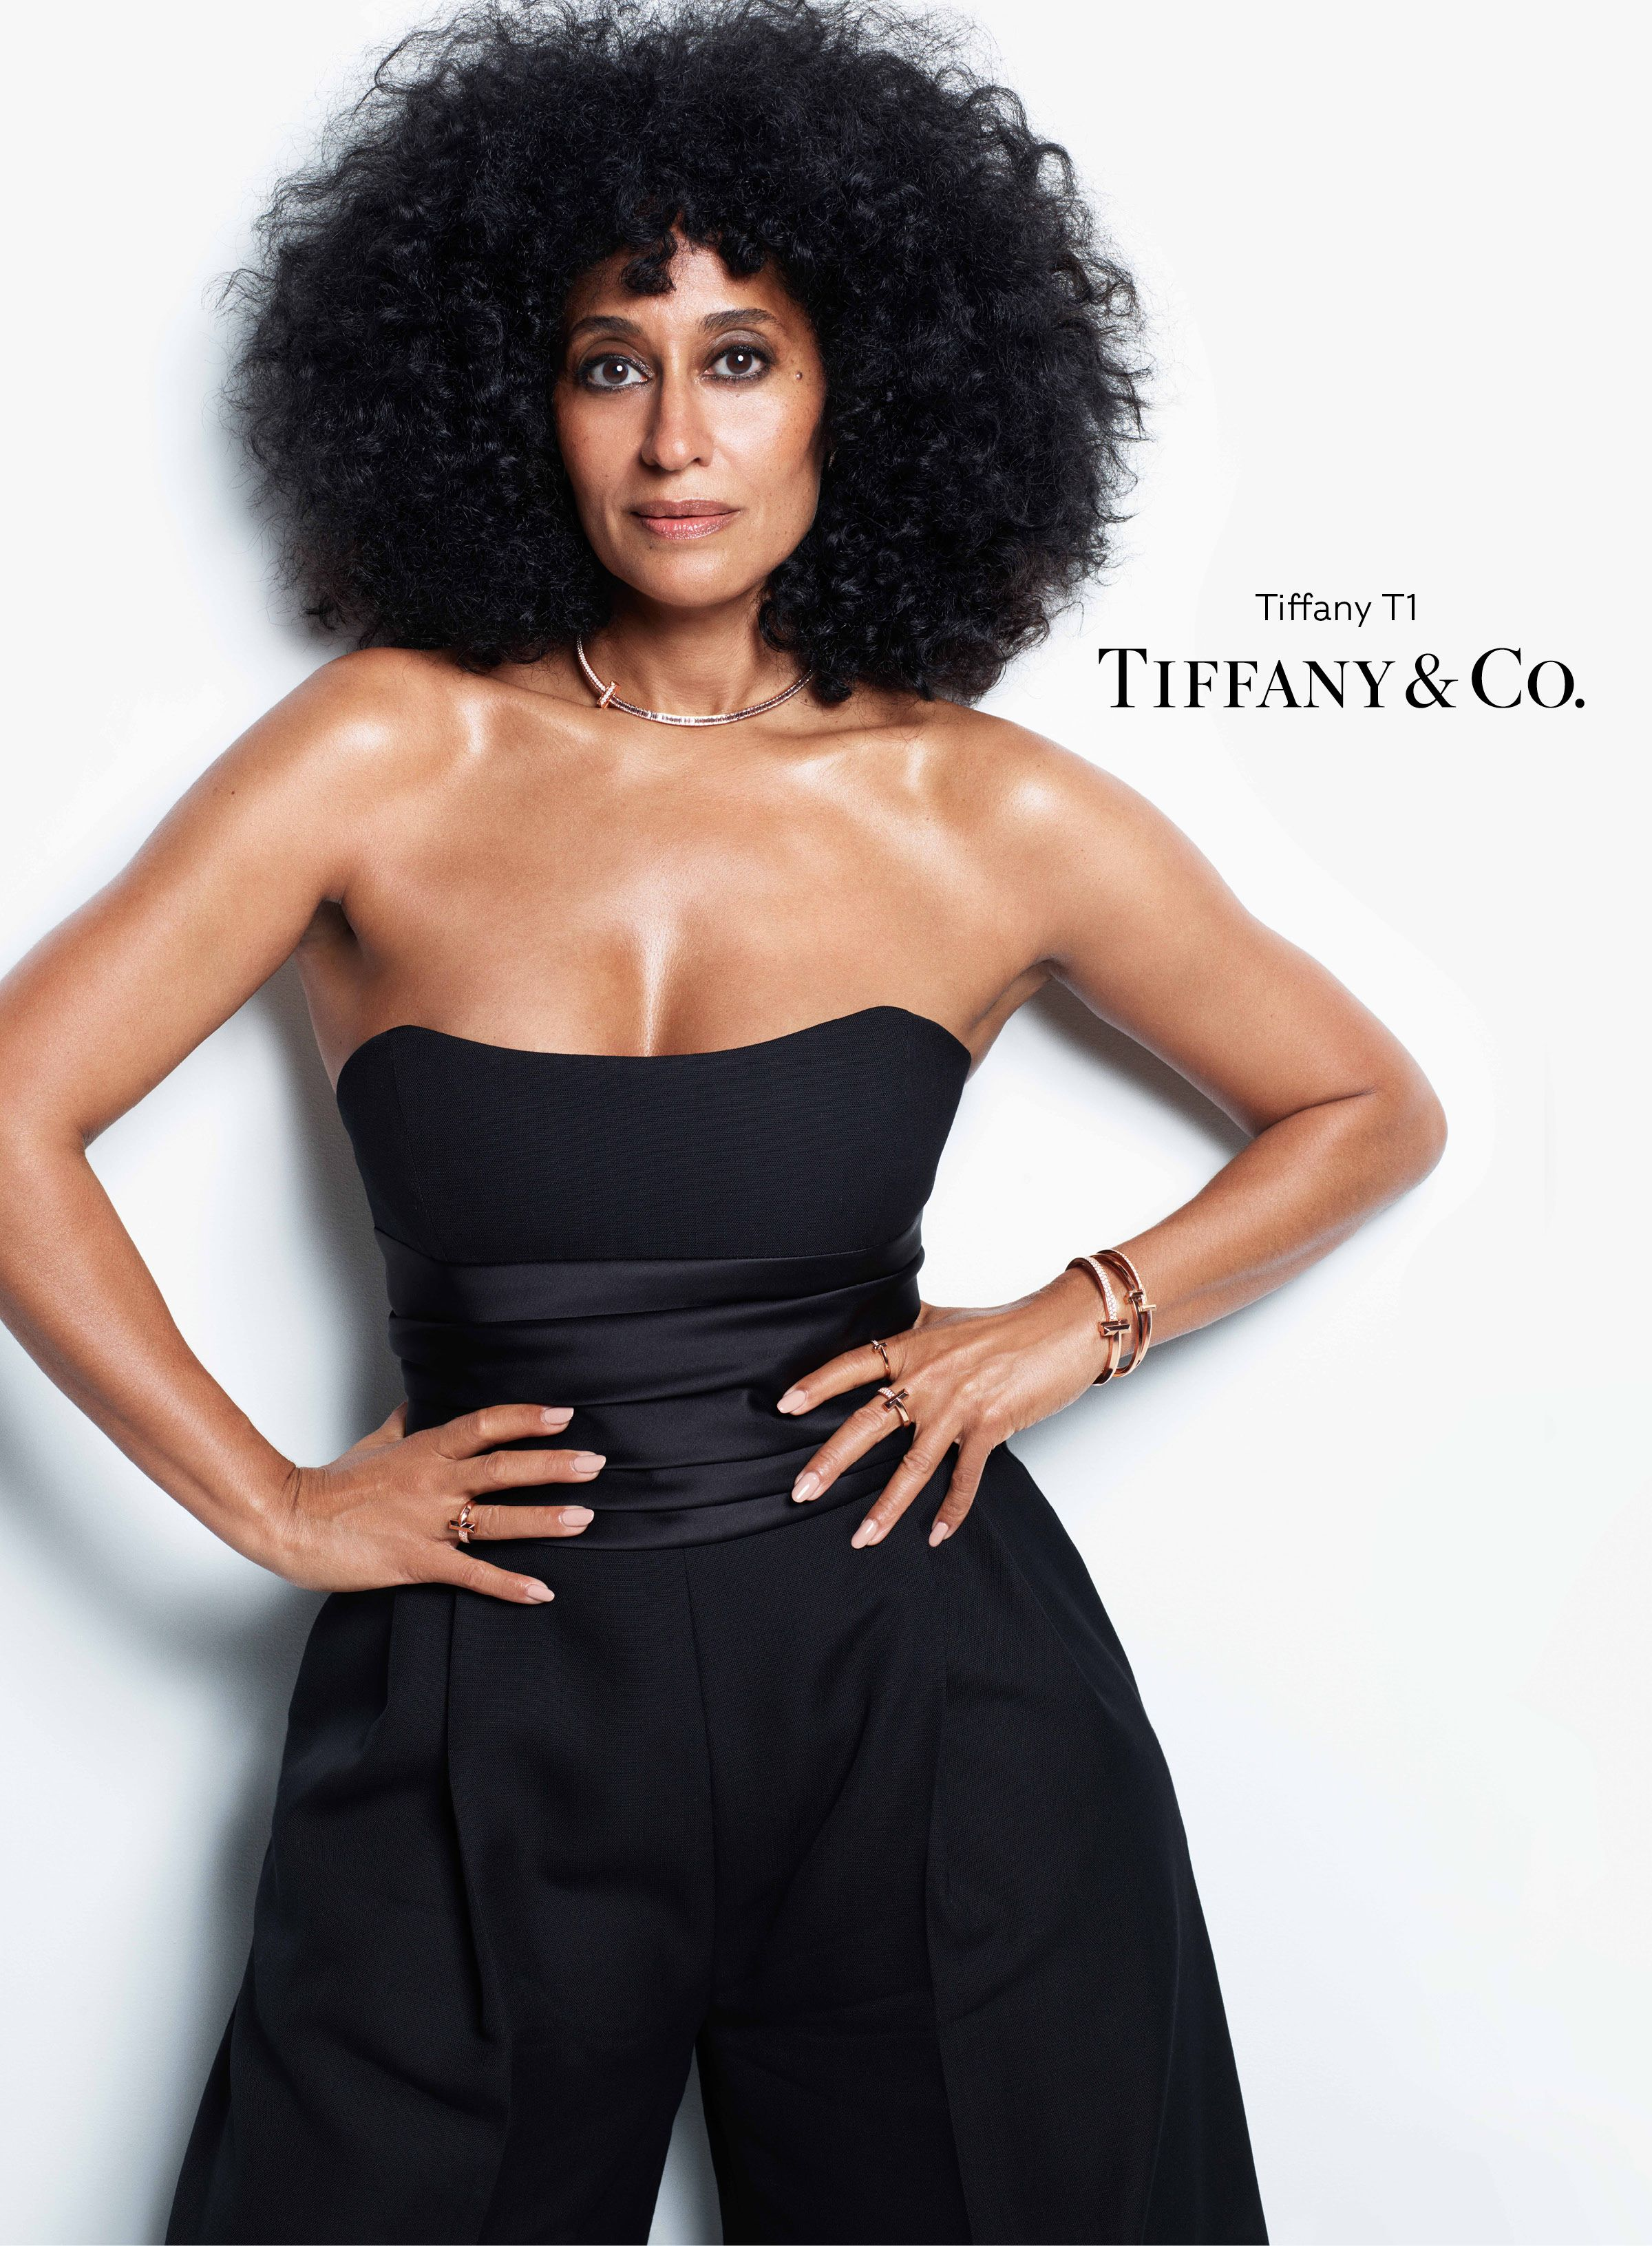 Tracee Ellis Ross is the New Face of Tiffany & Co.